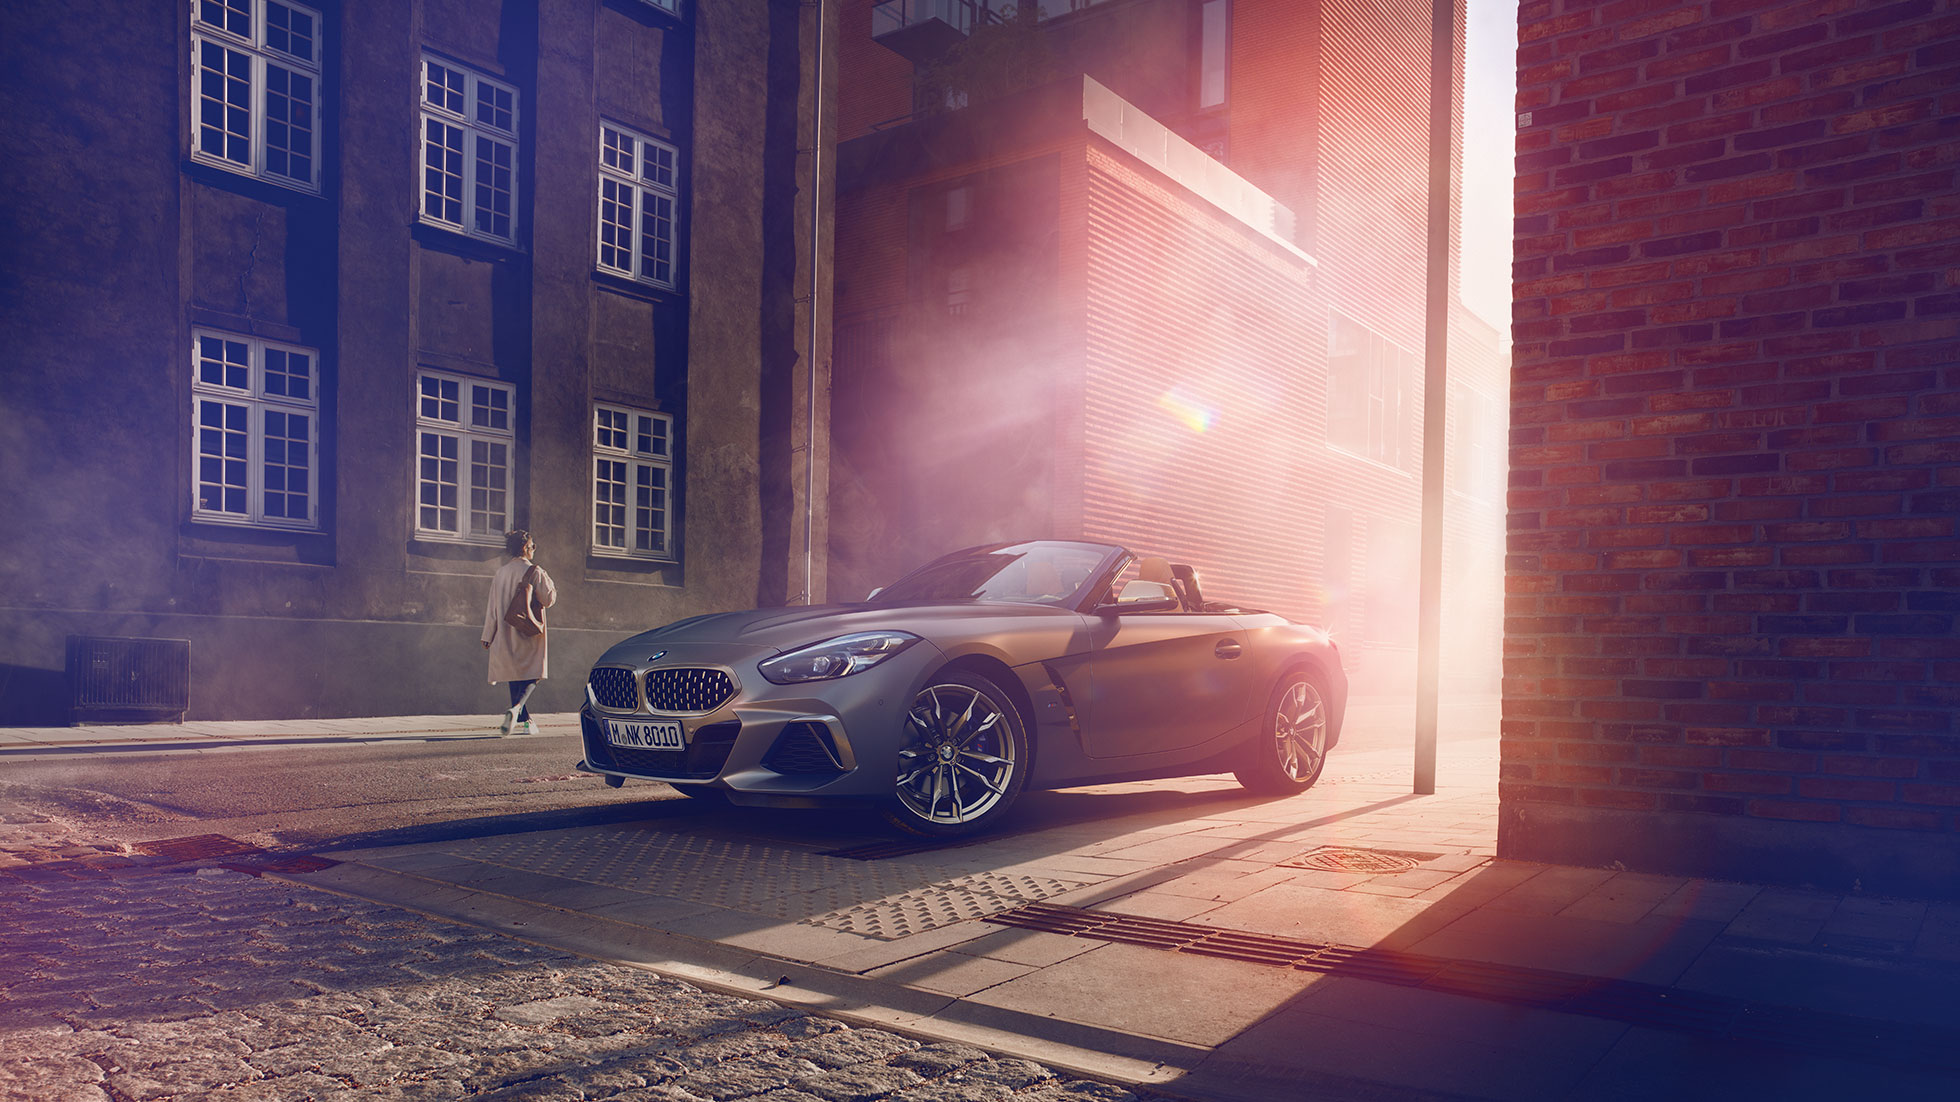 BMW Z4 Roadster in street